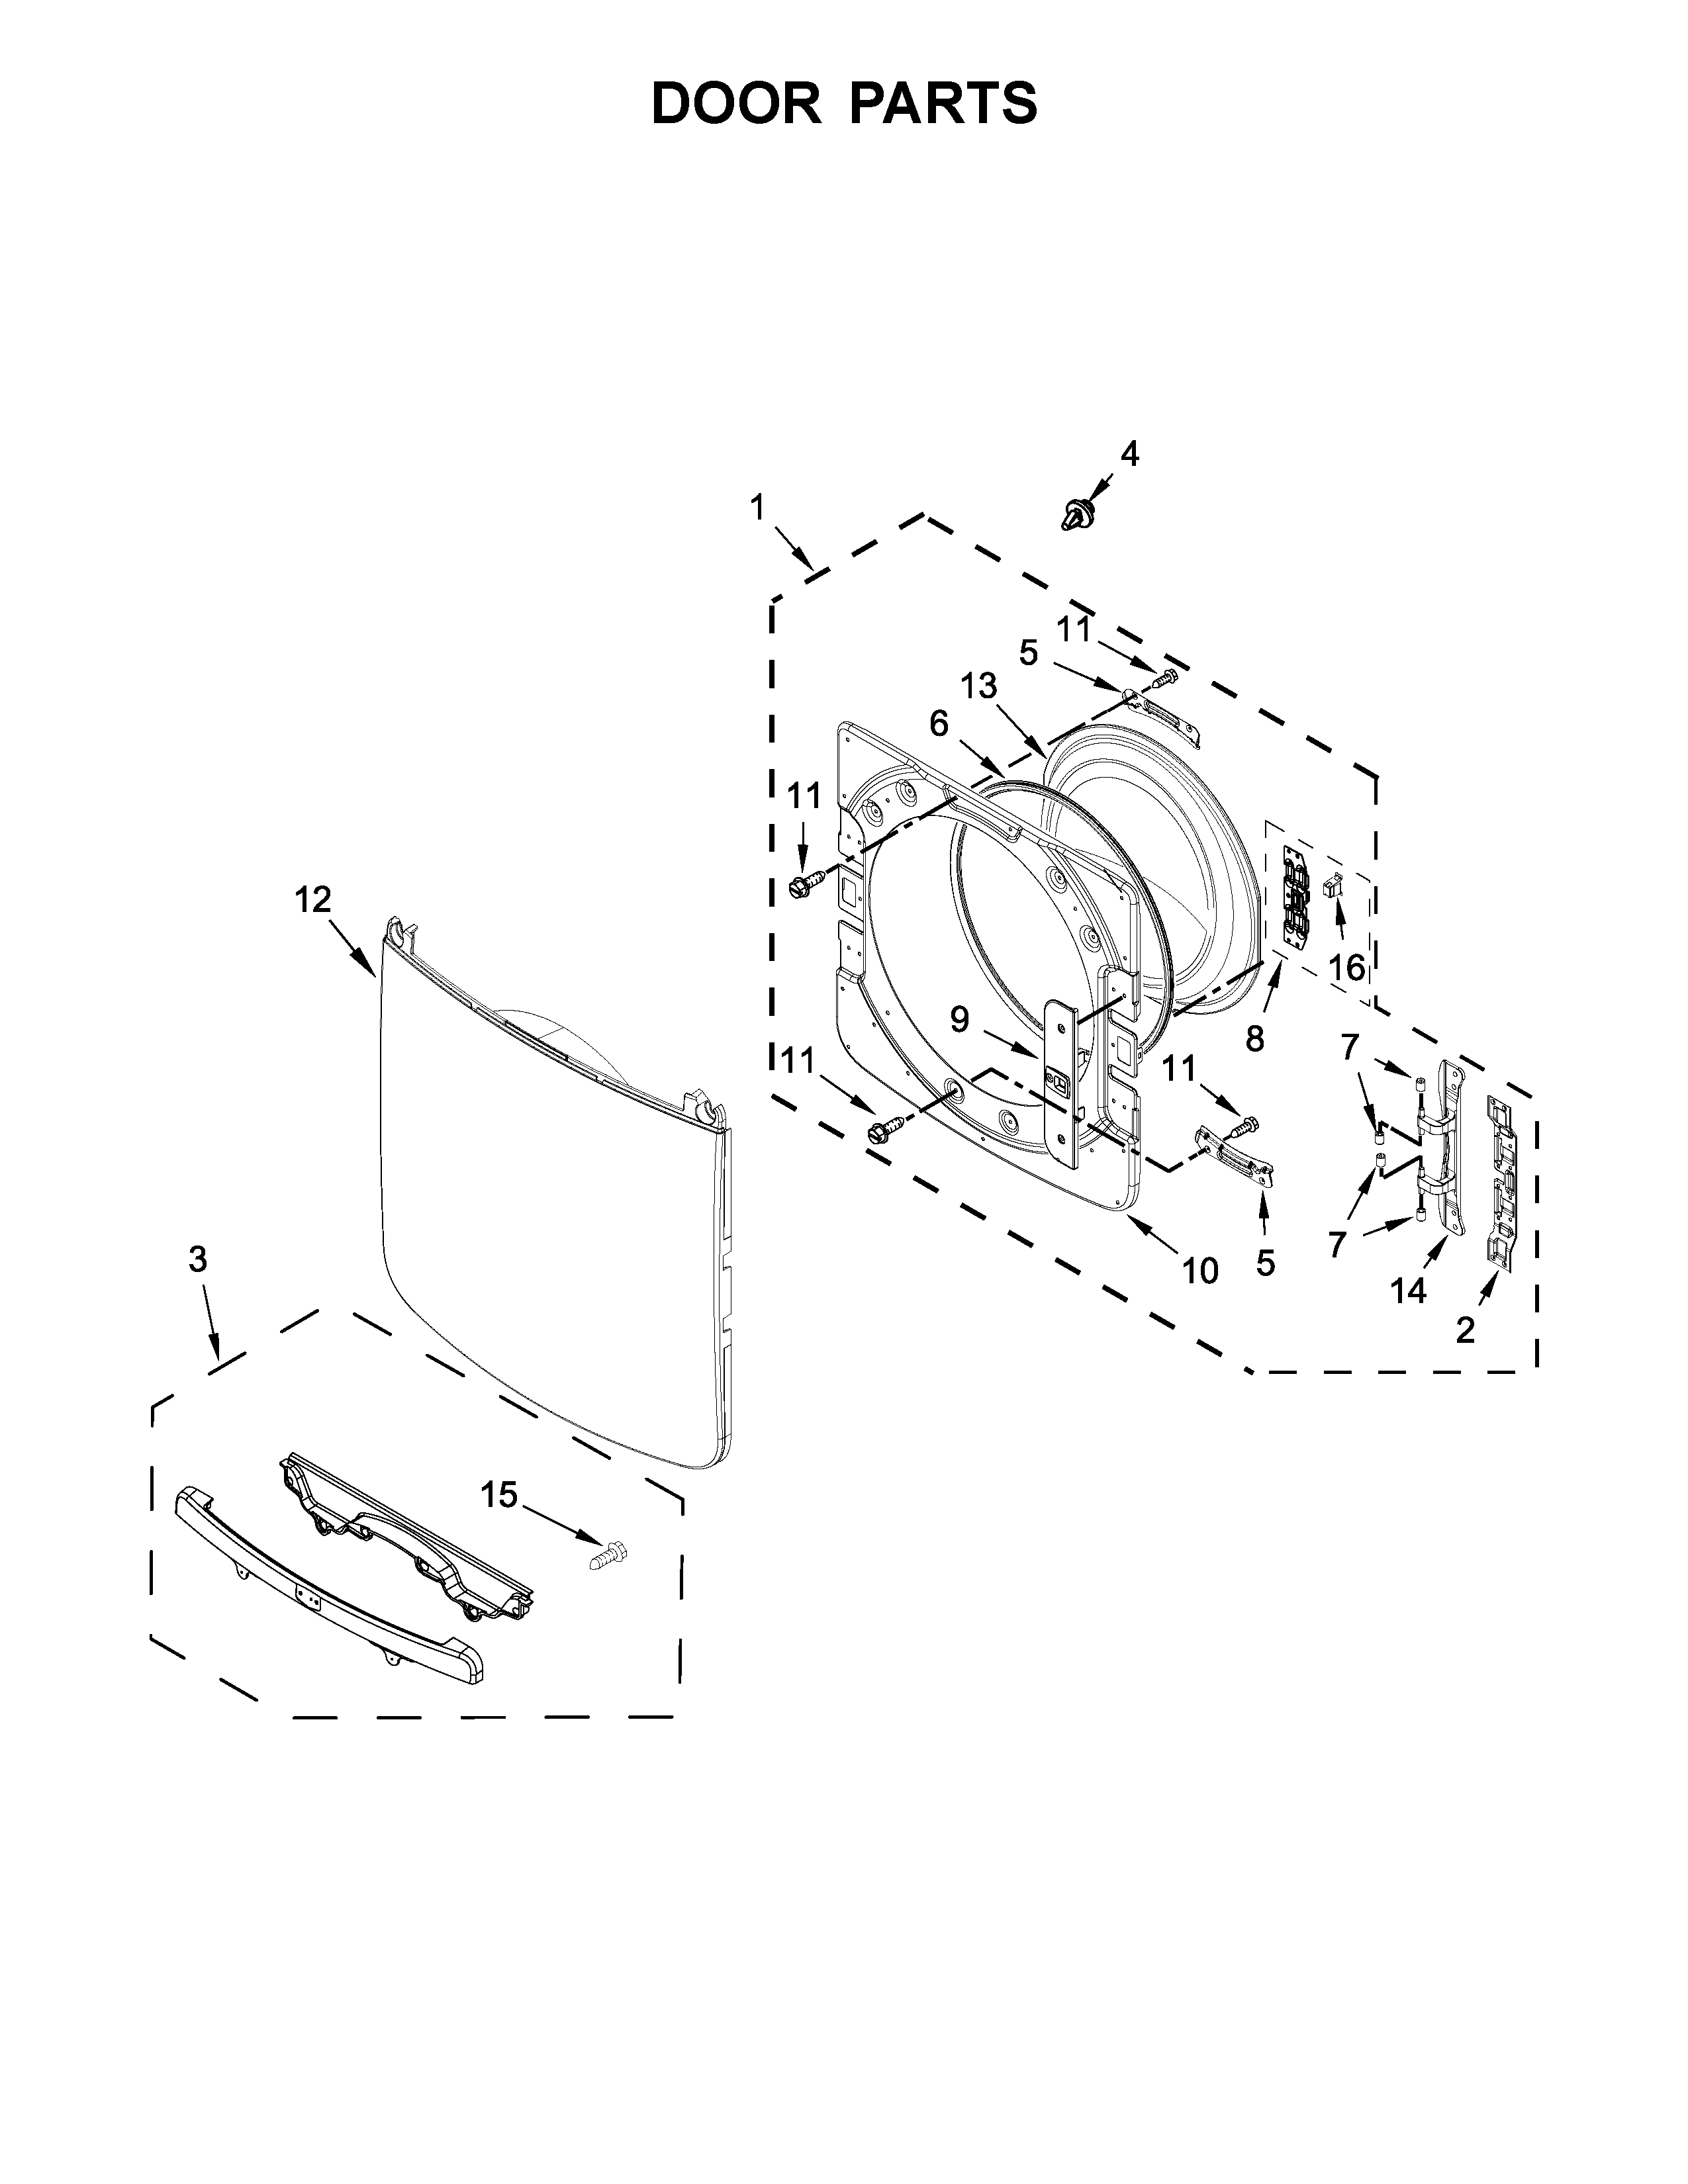 Maytag YMED8200FW1 door parts diagram